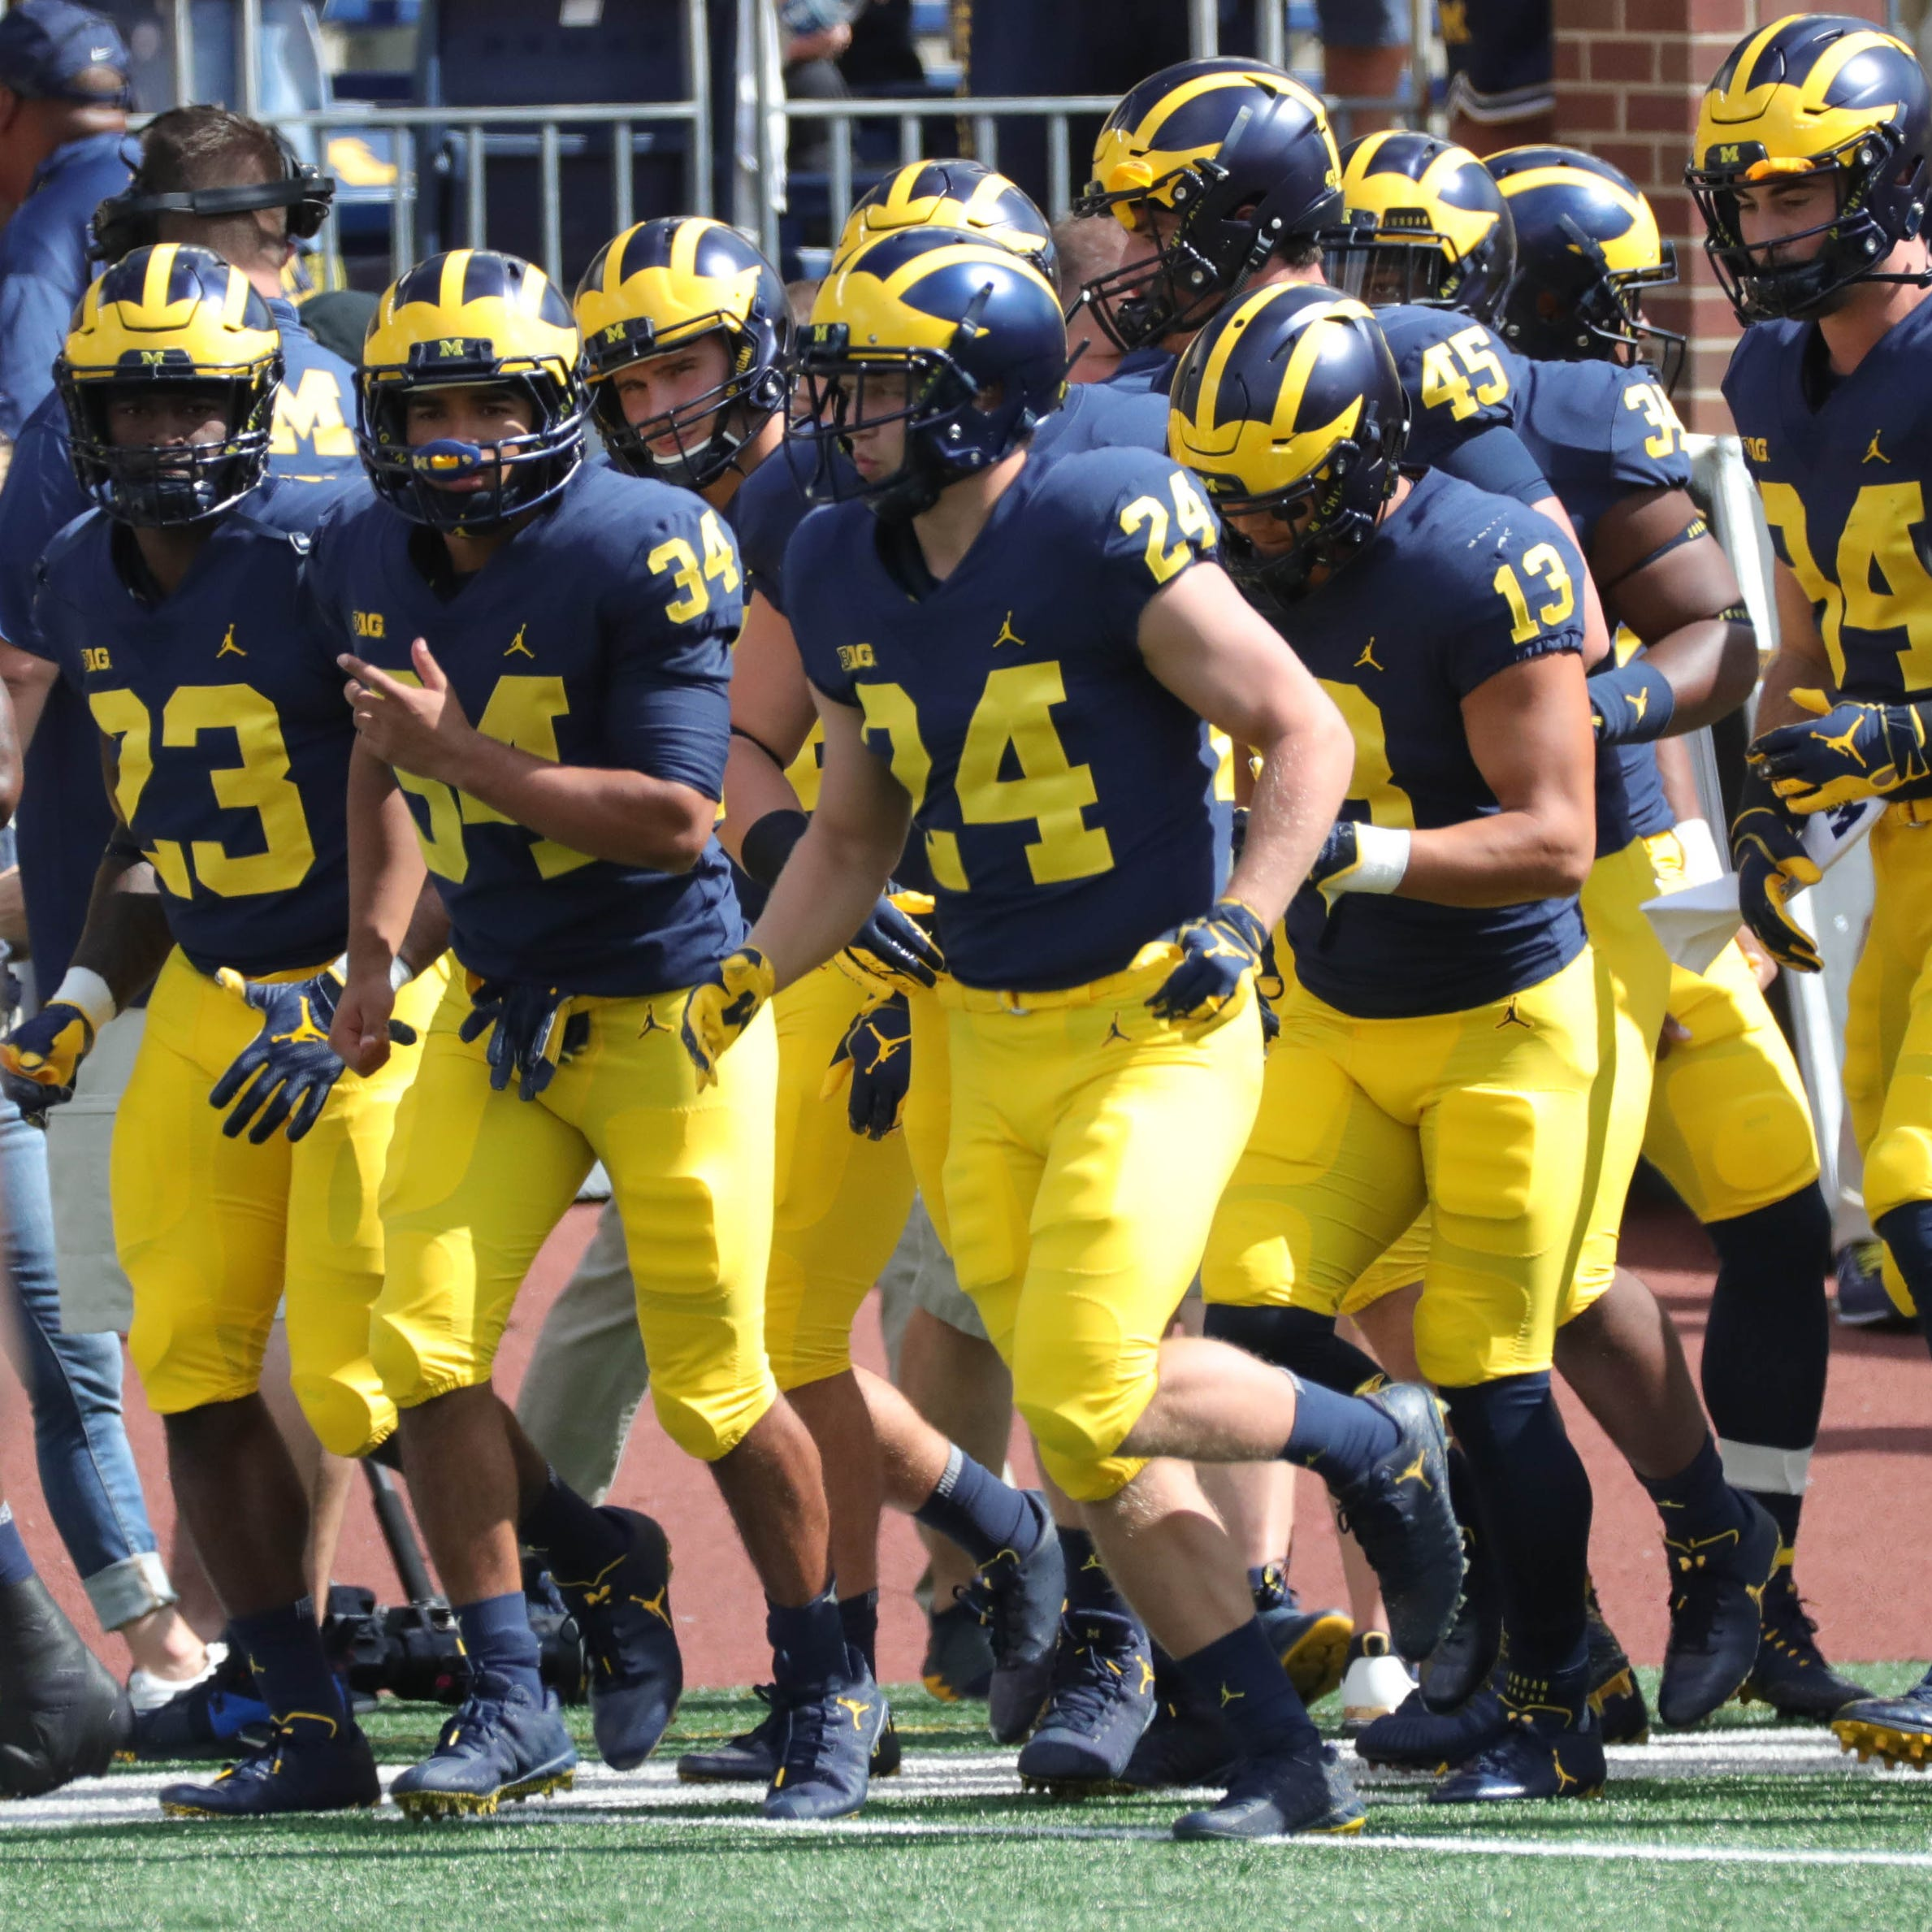 Michigan takes the field before the game against SMU on Saturday, September 15, 2018 in Ann Arbor.